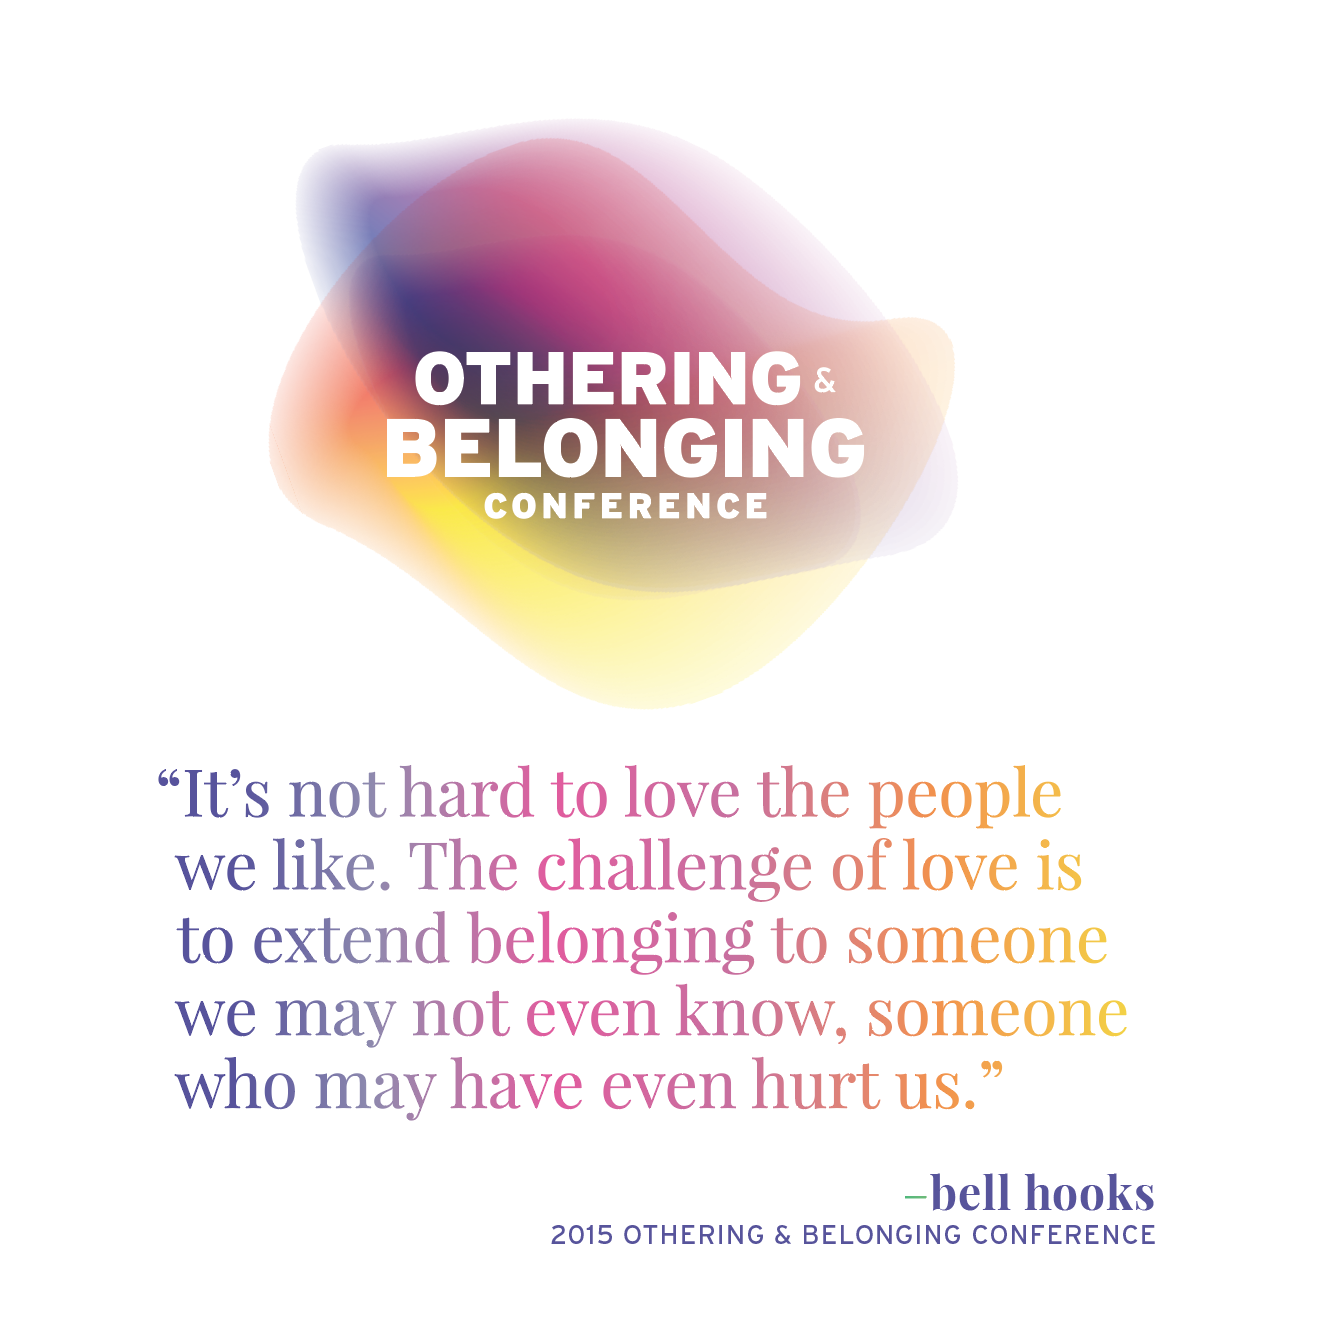 bell hooks quote O&B.png